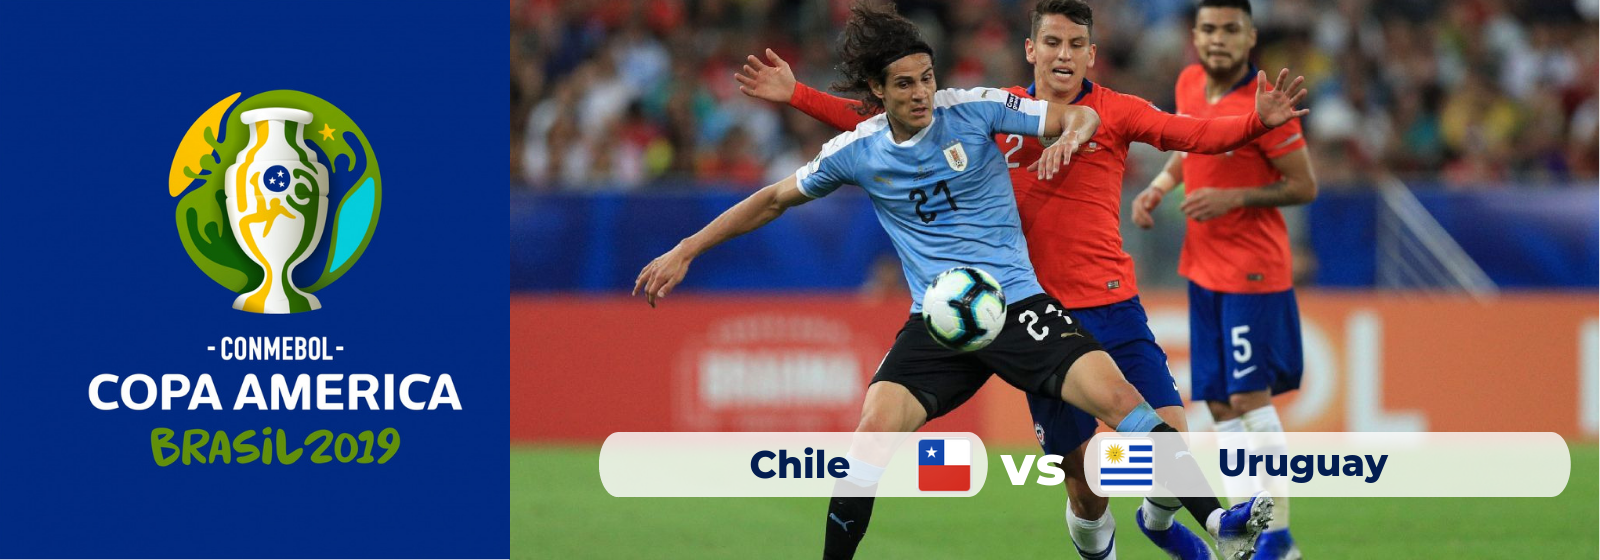 Copa America Chile Vs. Uruguay Asian Connect